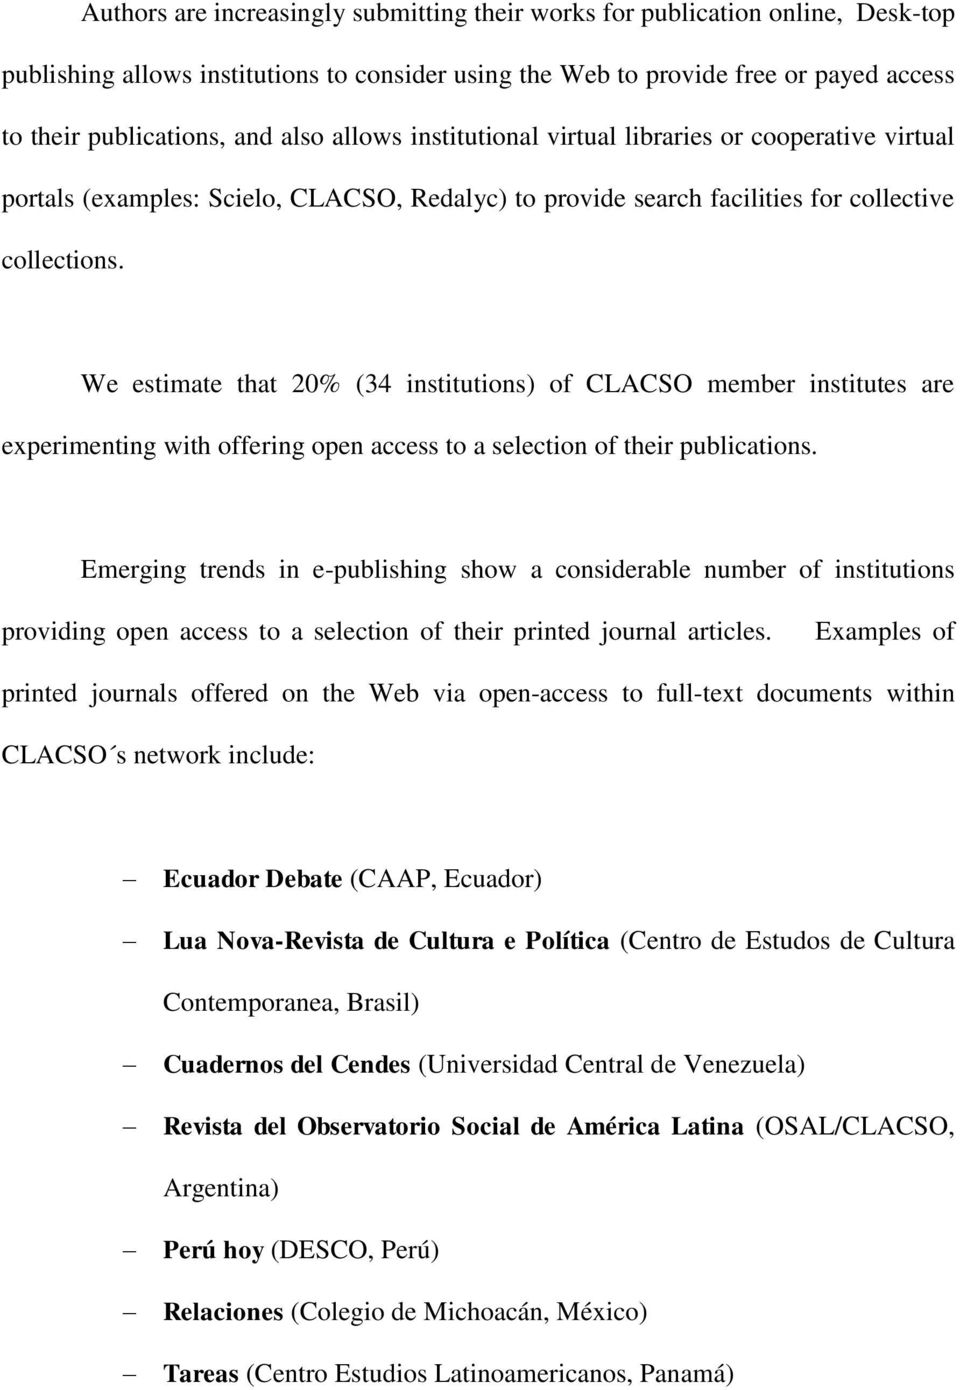 We estimate that 20% (34 institutions) of CLACSO member institutes are experimenting with offering open access to a selection of their publications.